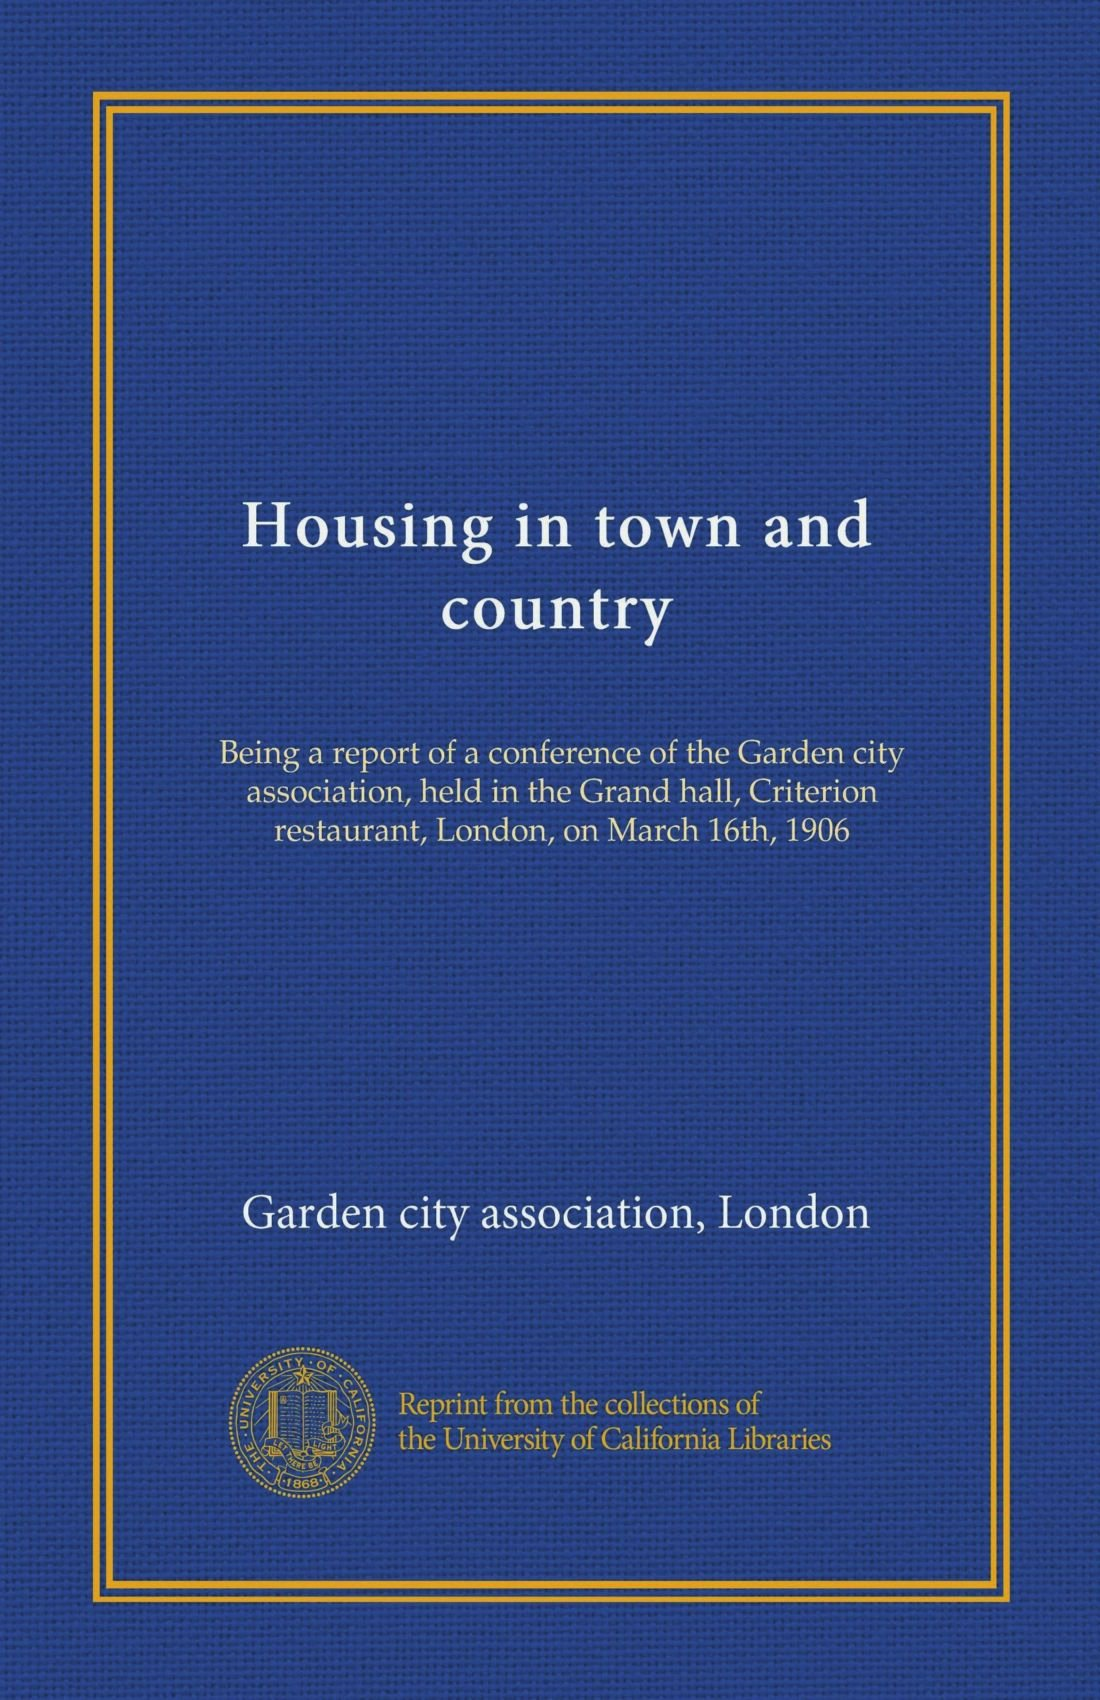 Housing in town and country (Vol-1): Being a report of a conference of the Garden city association, held in the Grand hall, Criterion restaurant, London, on March 16th, 1906 pdf epub